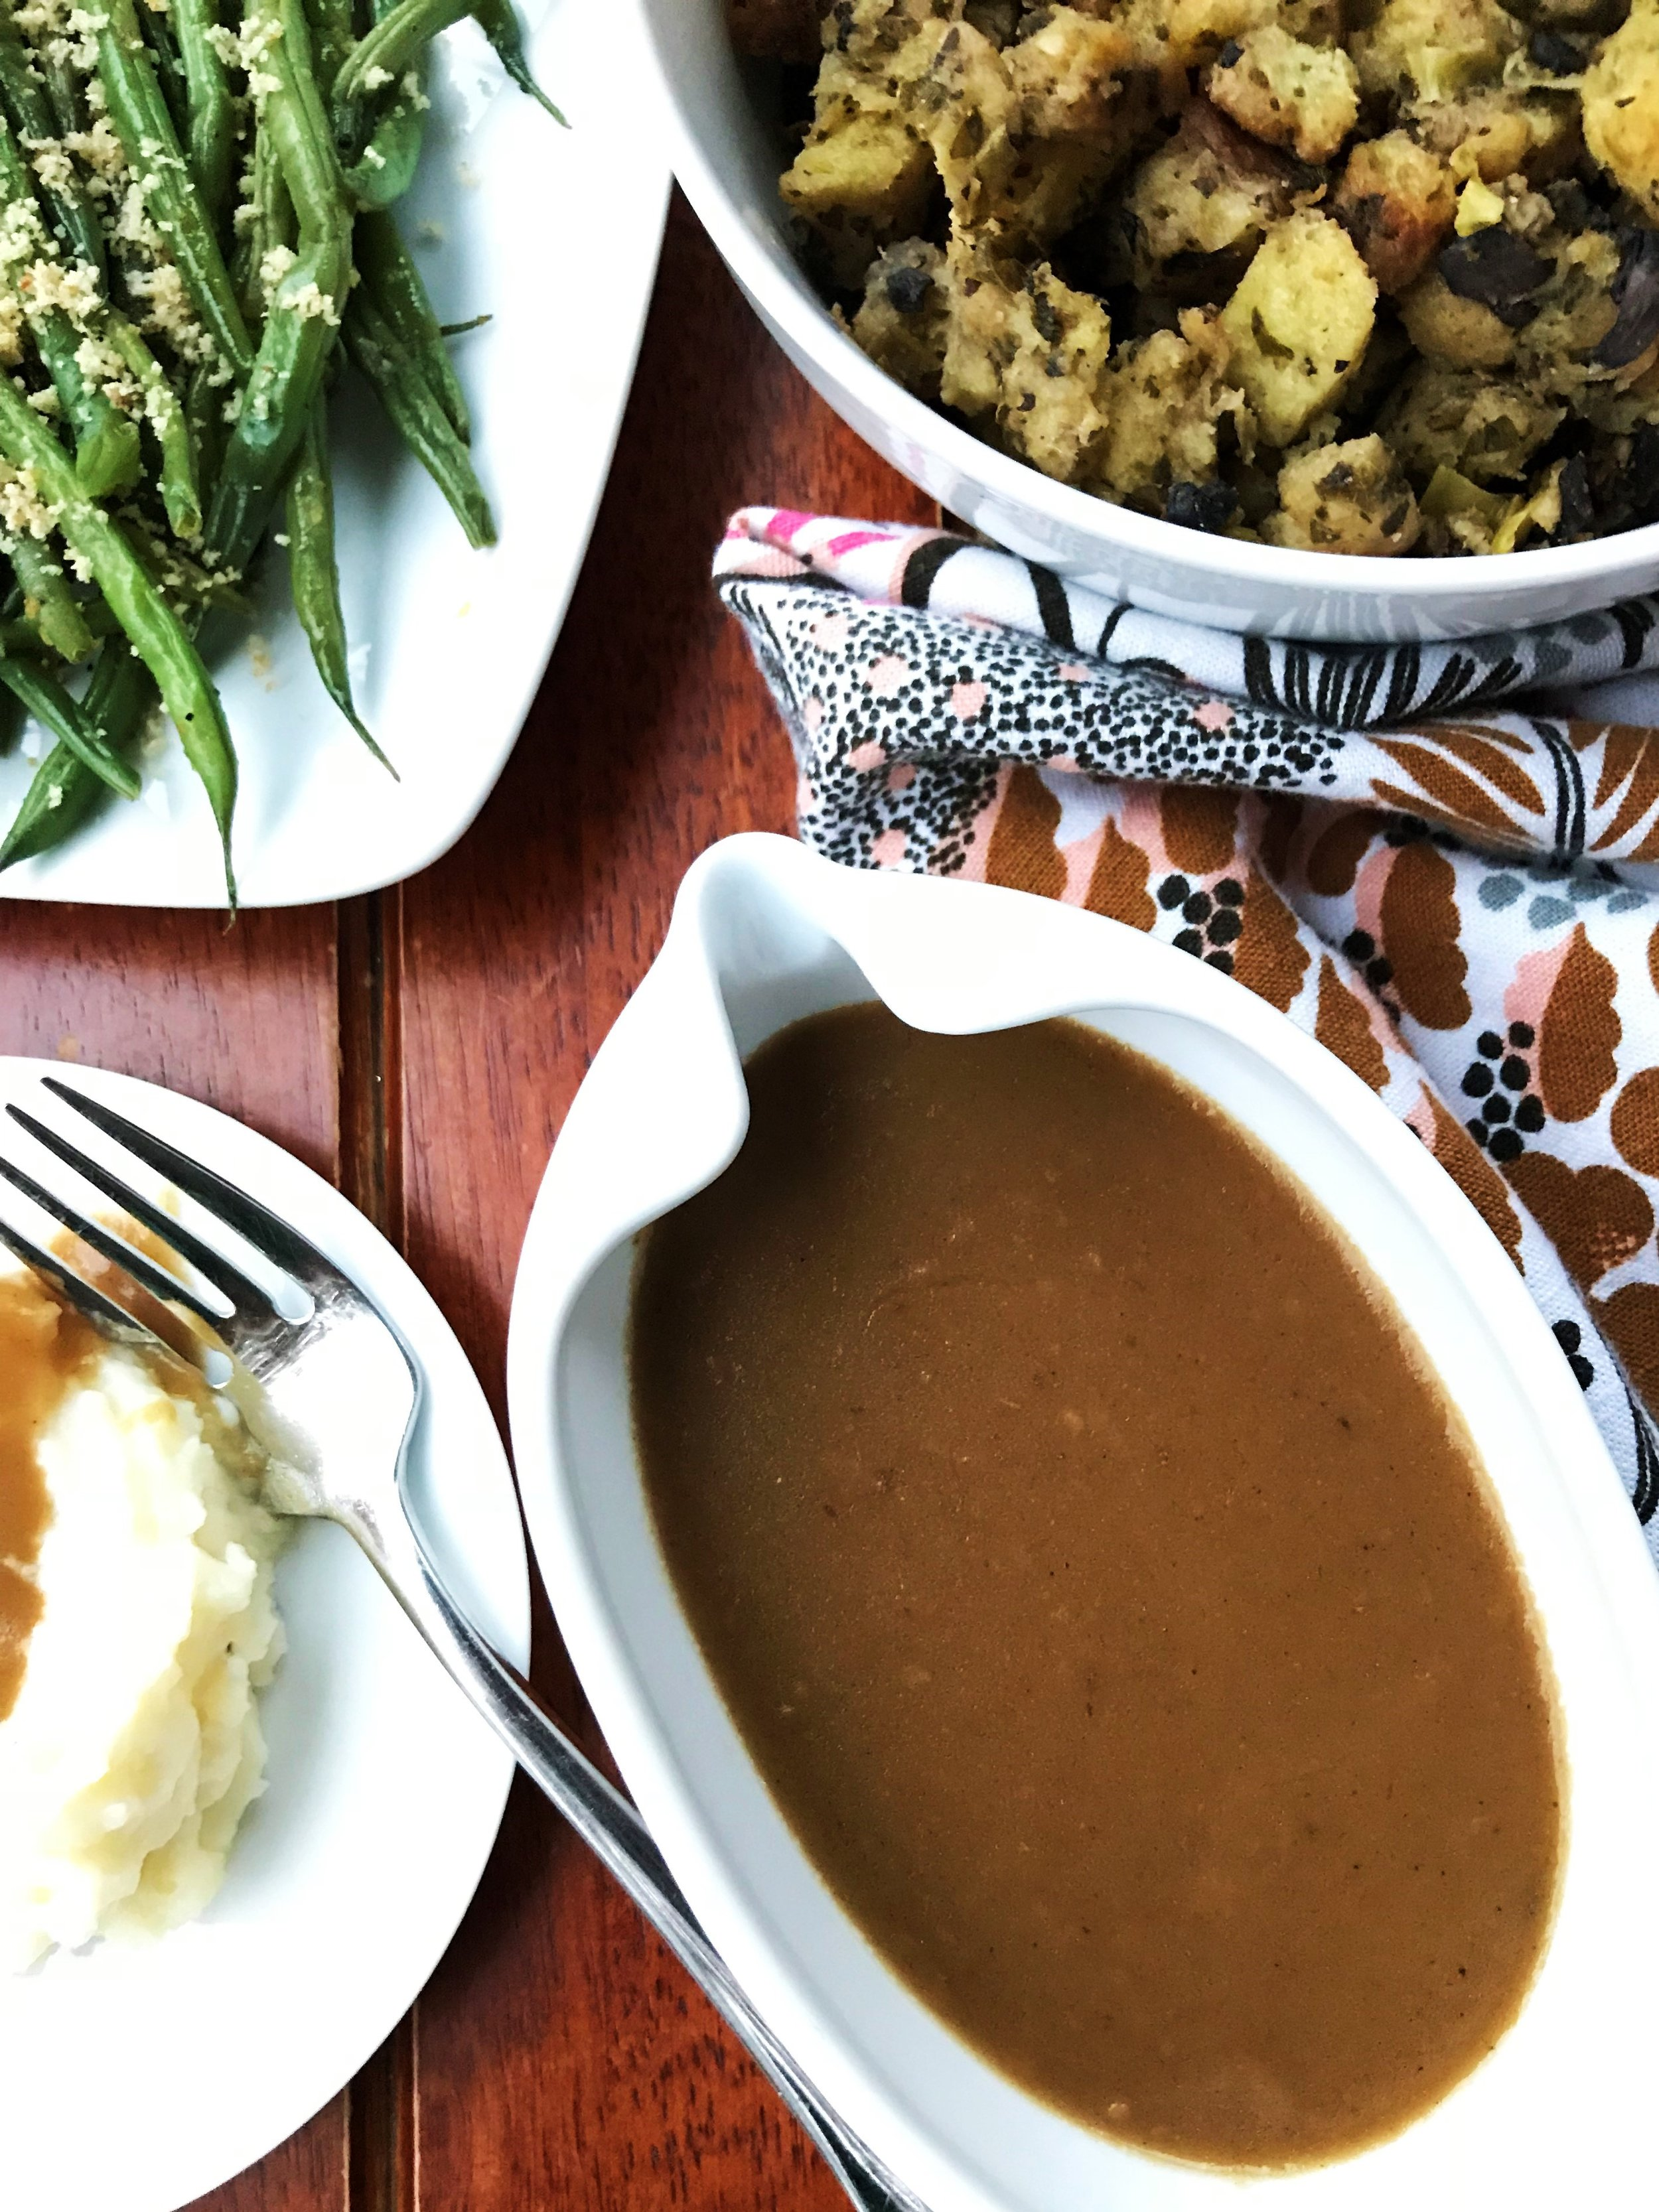 Turkey gravy with mashed potatoes, green beans and stuffing.